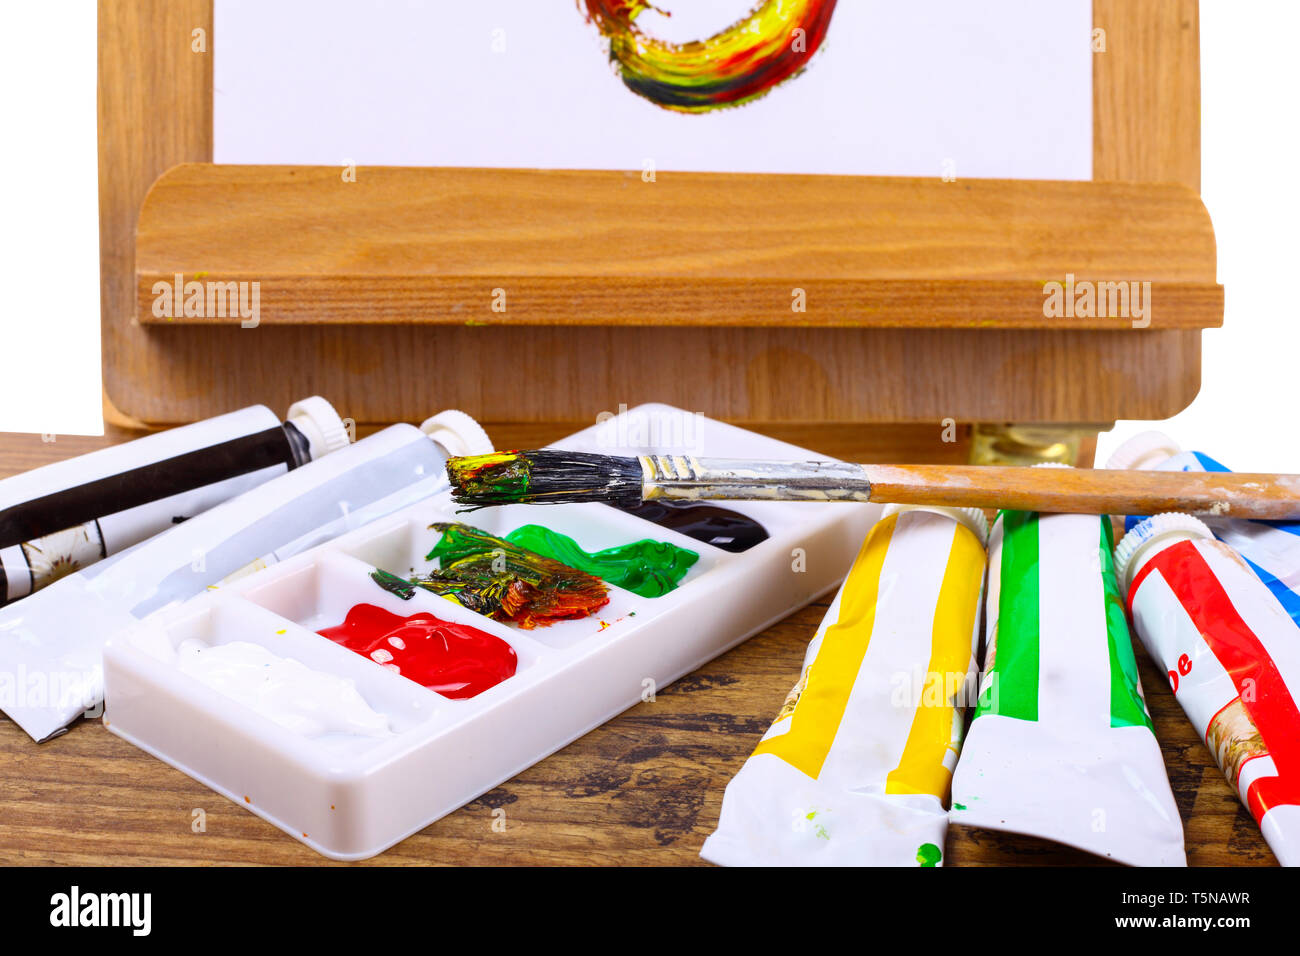 Acrylic paints on an easel - isolated on a white backgrond - Stock Image